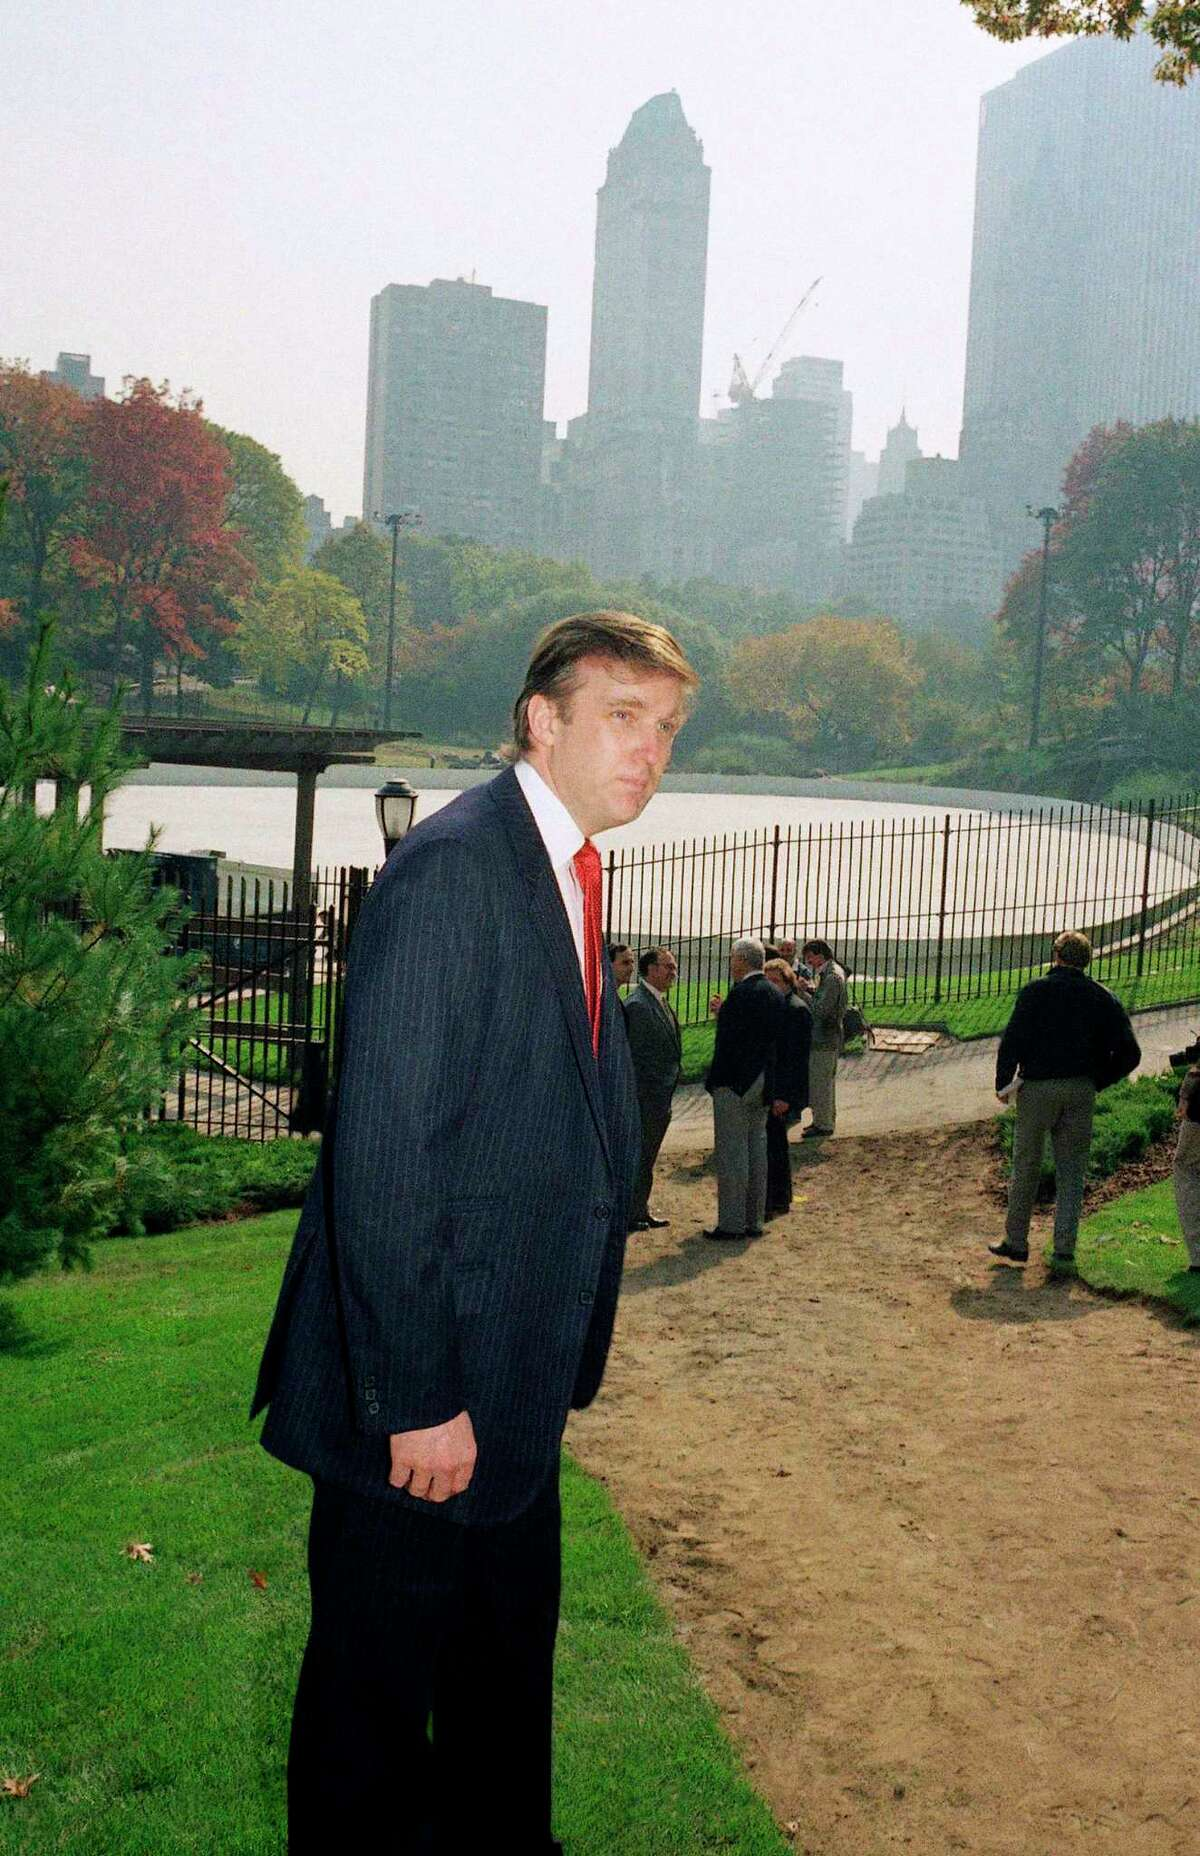 In this Oct. 23, 1986 photo, Donald Trump is photographed in New York's Central Park, in front of the Wollman Skating Rink, which he offered to rebuild after the city's renovation effort had come to a standstill.